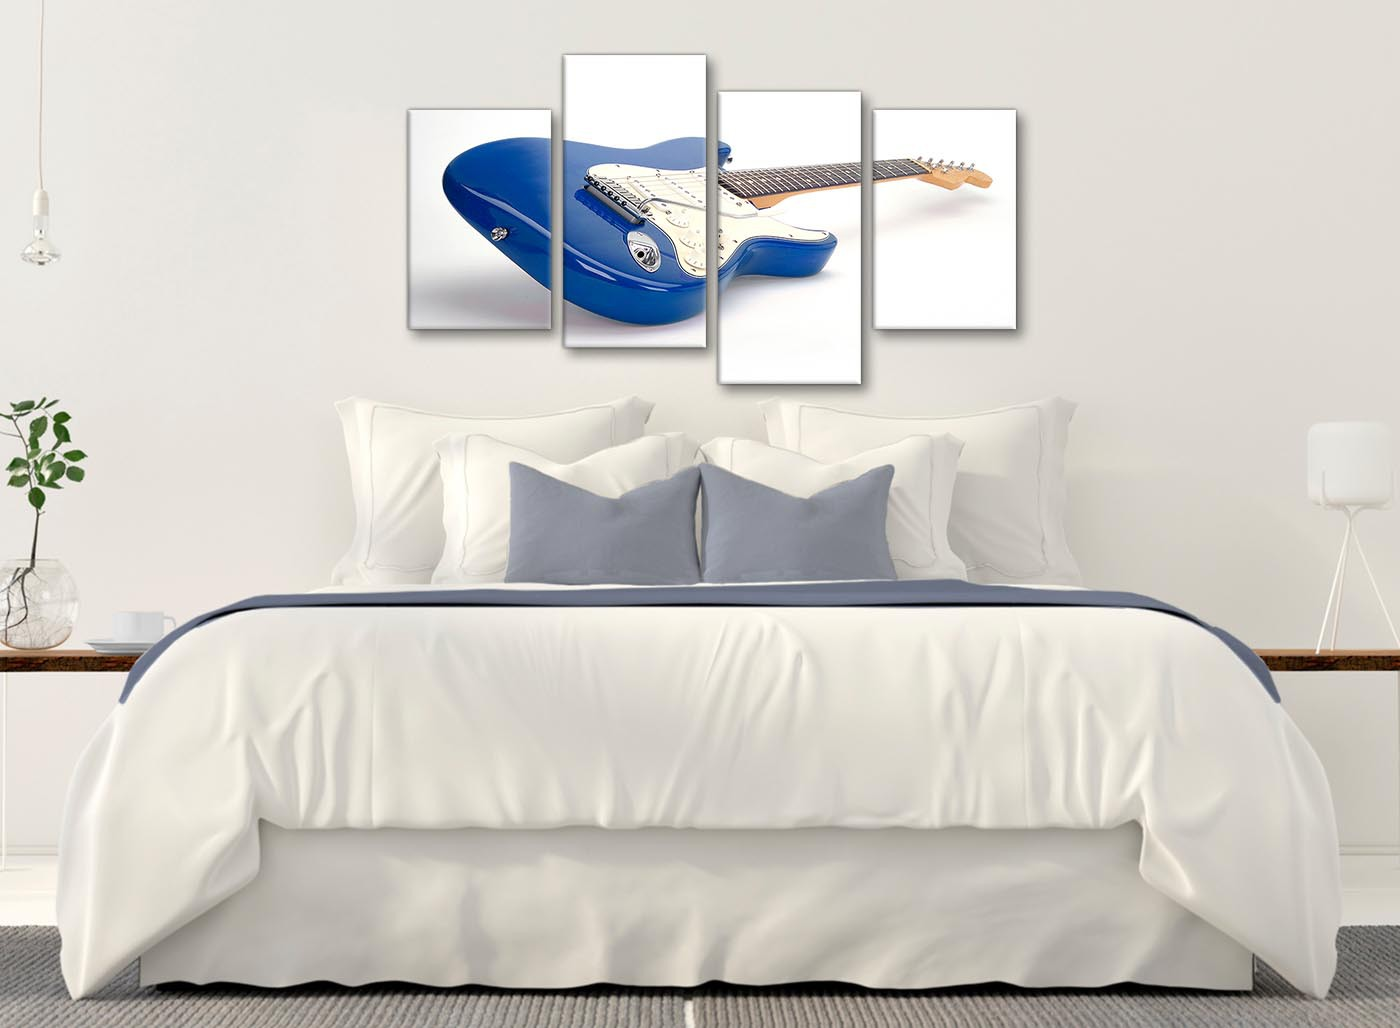 Guitar Decor For Bedroom Large Blue White Fender Electric Guitar Living Room